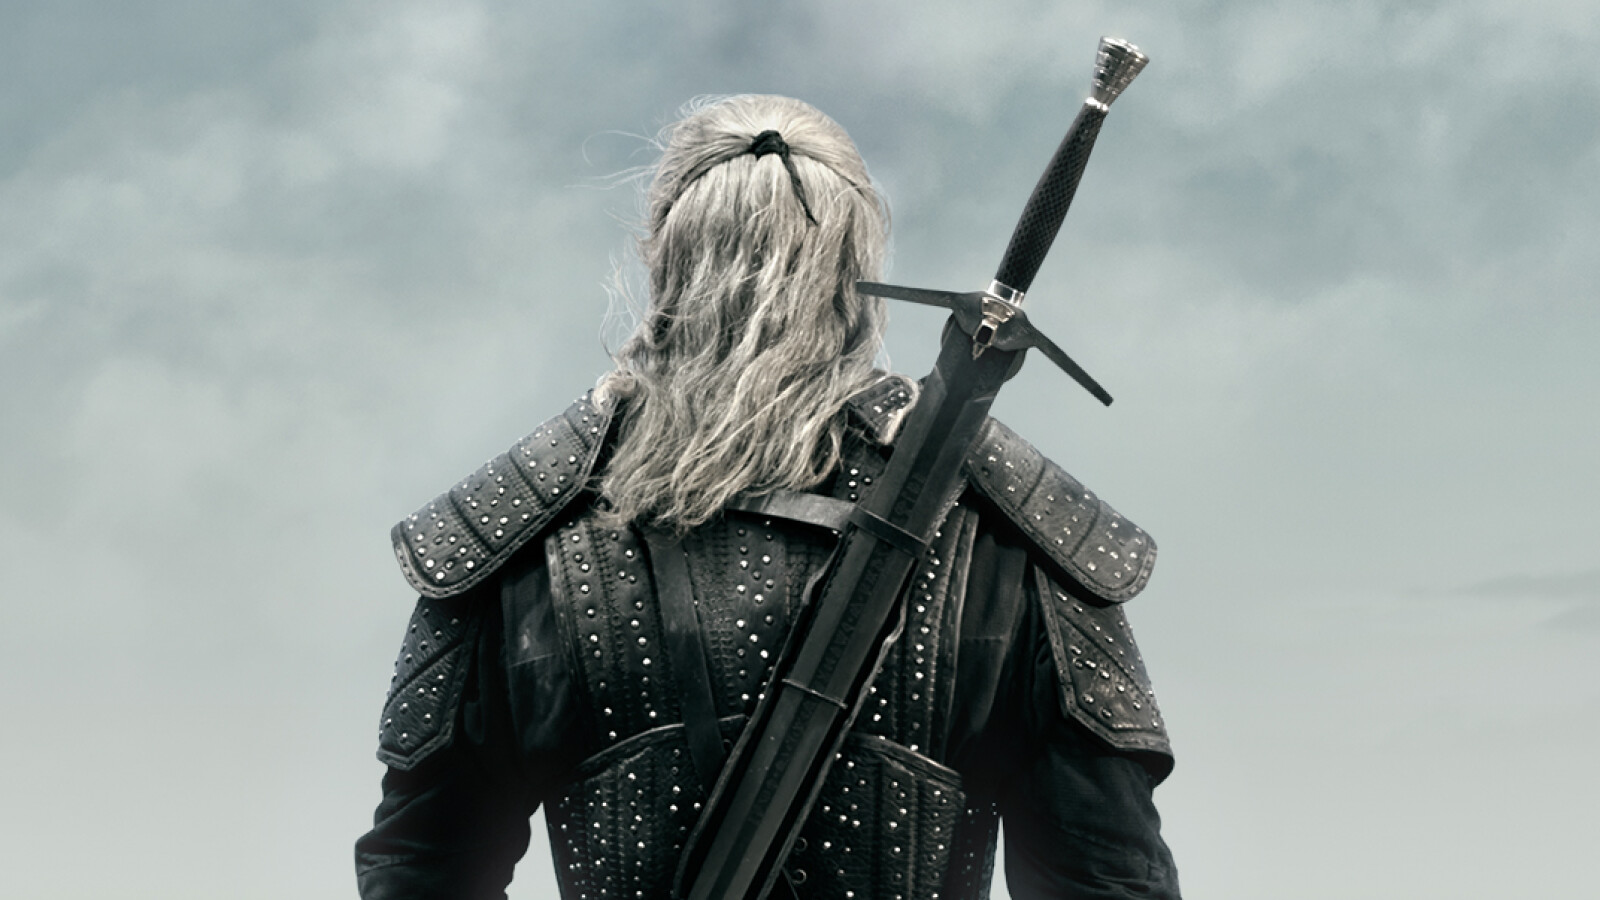 The Witcher Staffel 1: Erster Trailer zeigt Henry Cavill in Action